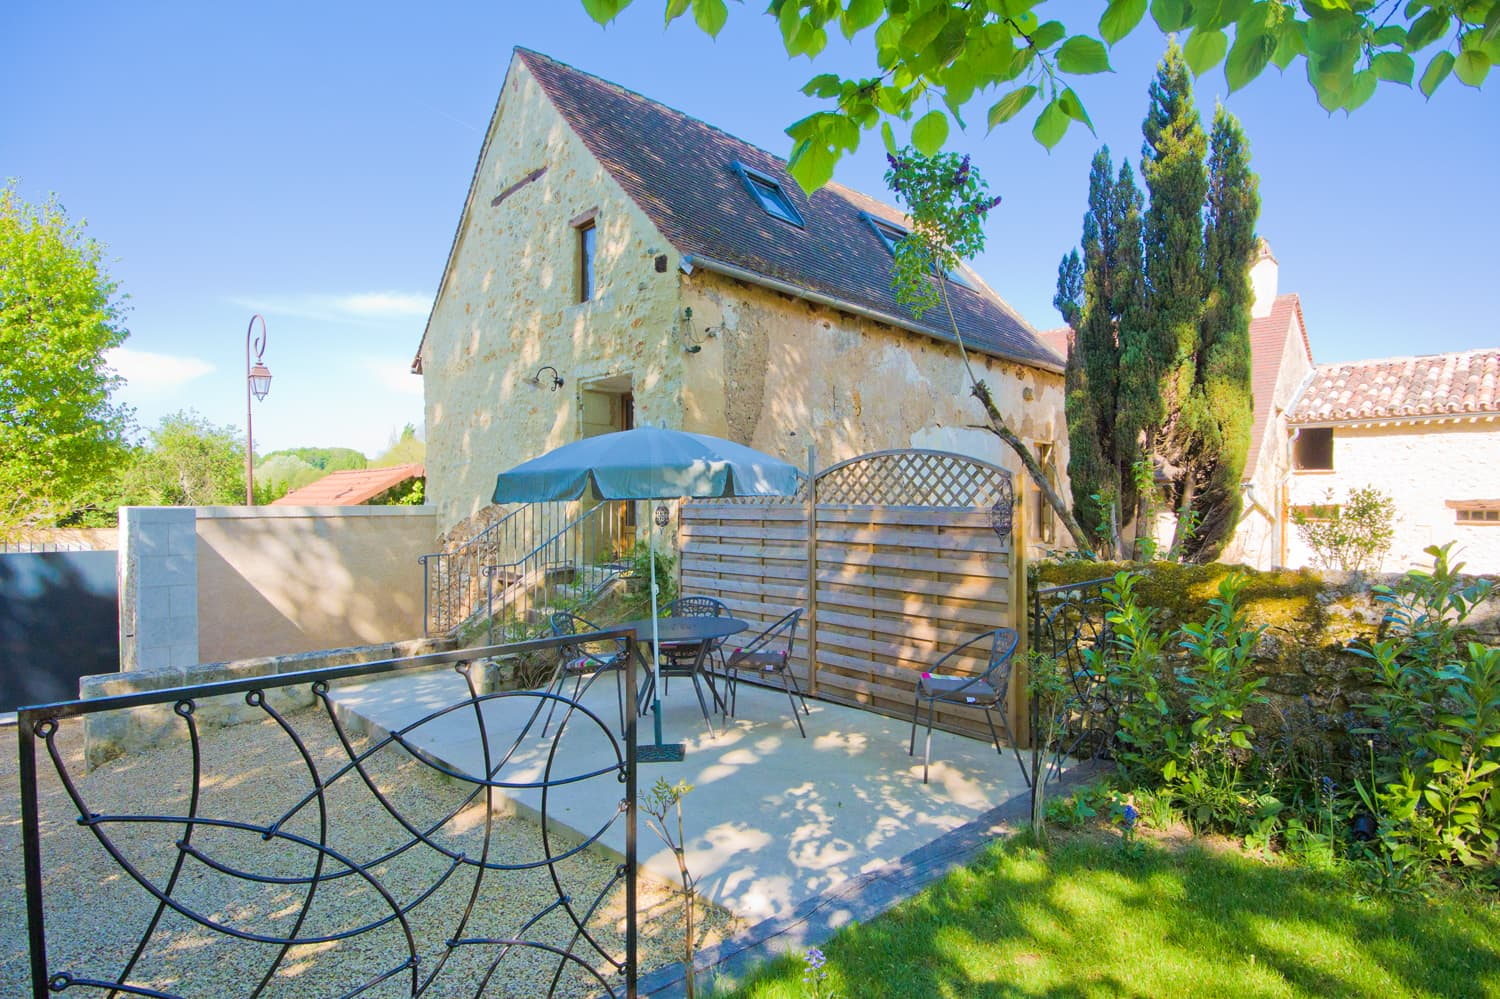 Dordogne holiday accommodation